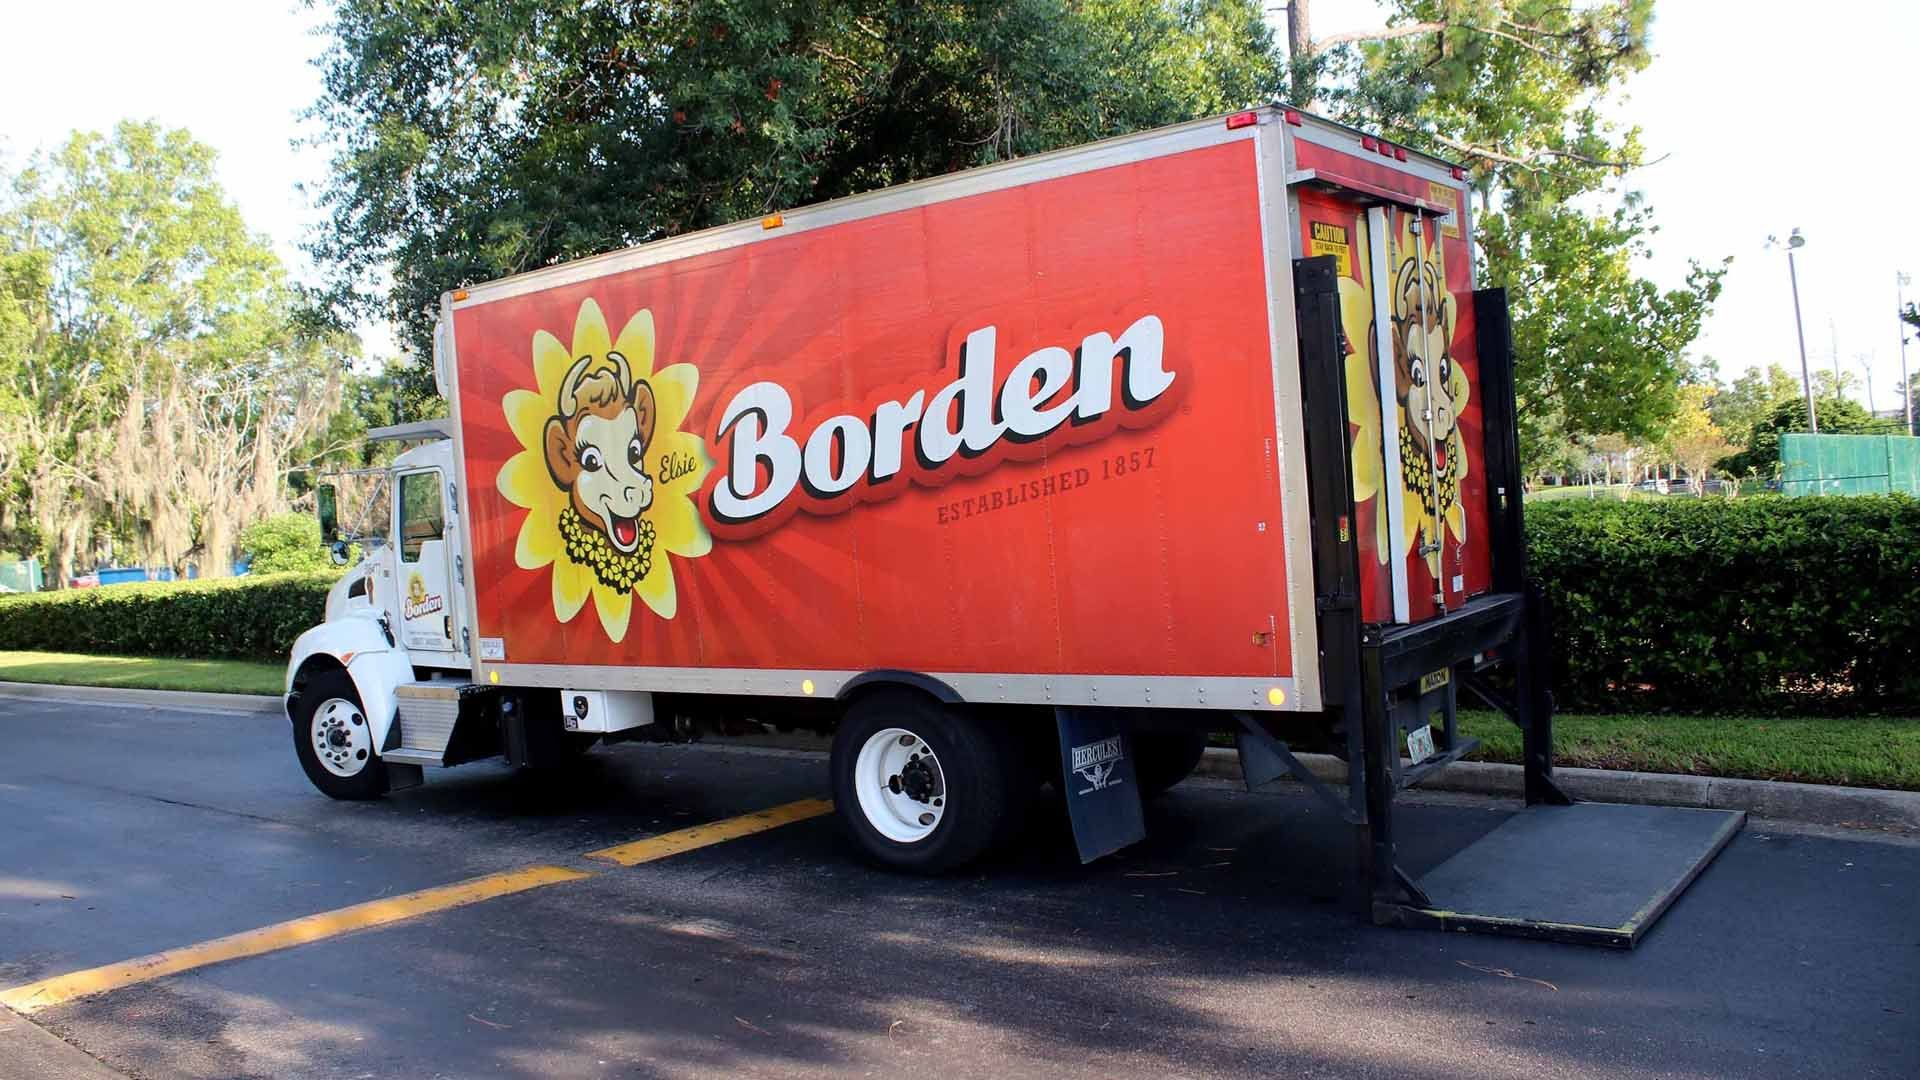 A Borden Dairy Co. truck is seen in a file photo. (Credit: Shutterstock)